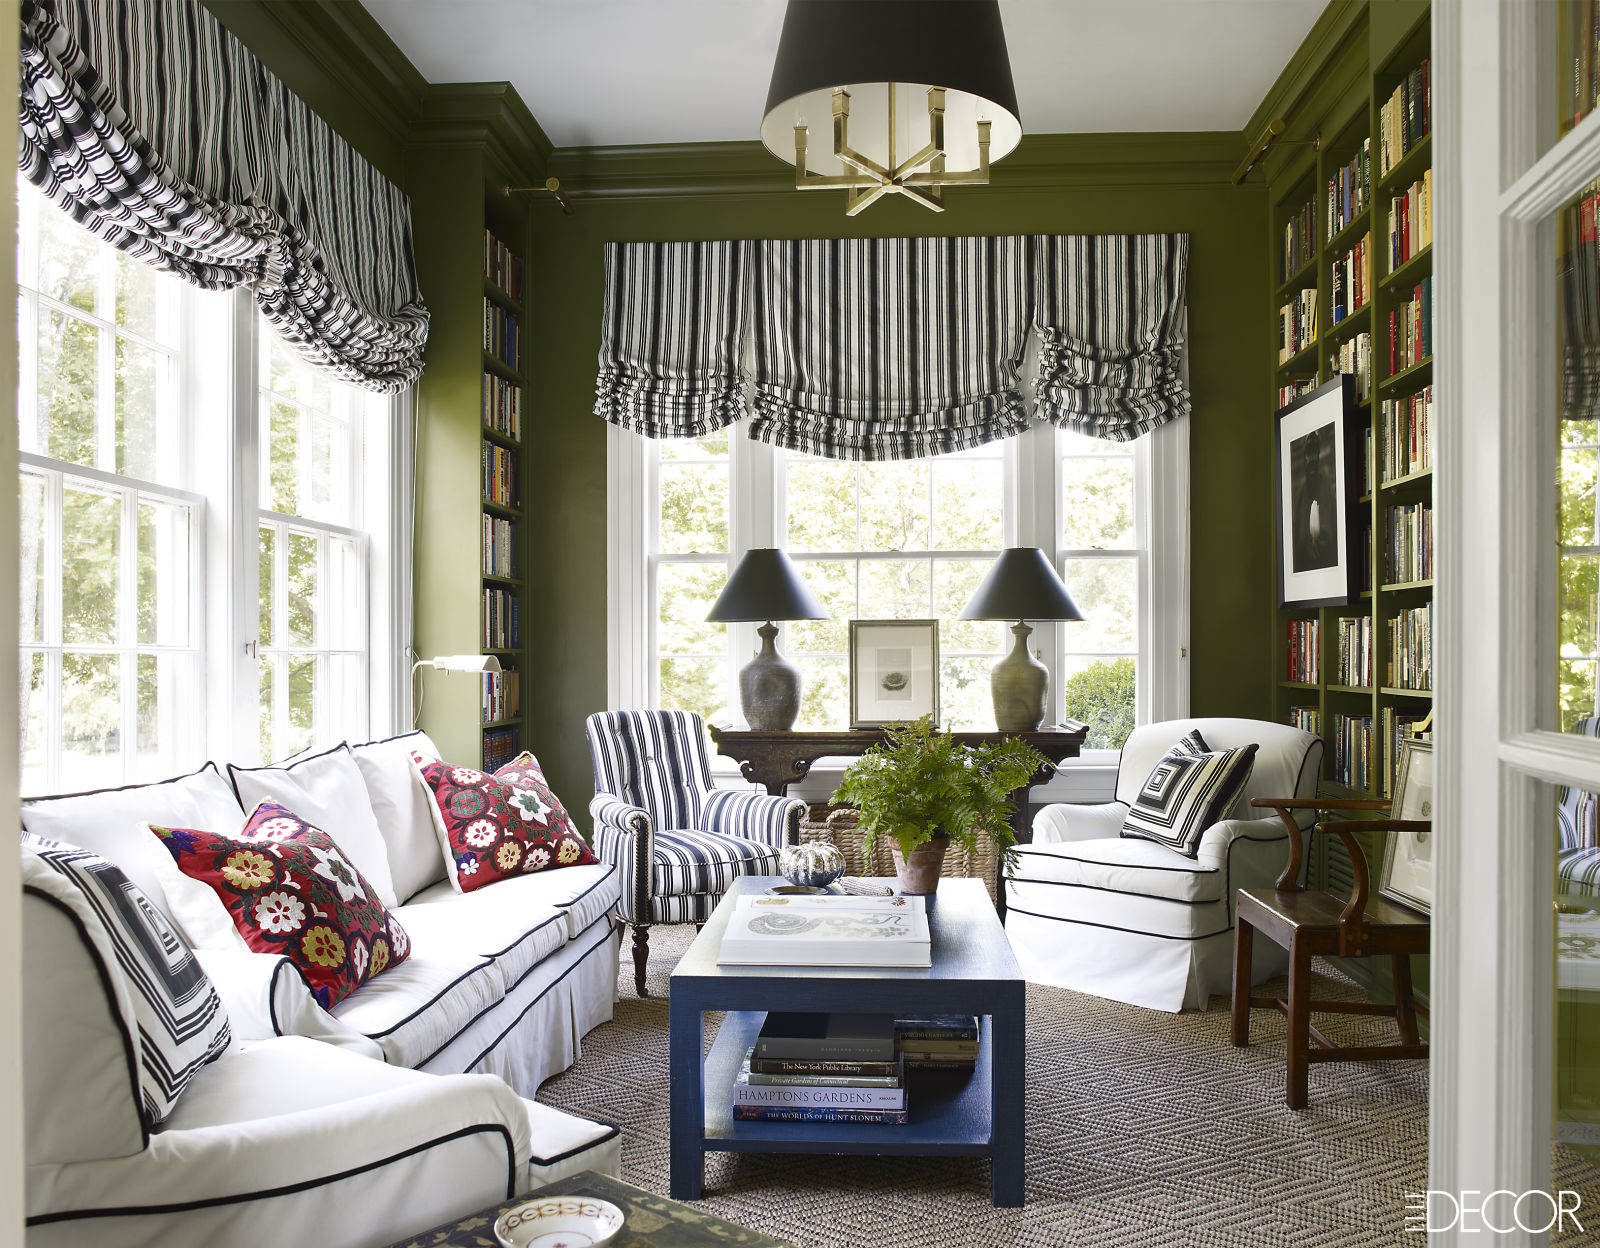 20 olive green paint color decor ideas olive green walls furniture decorations